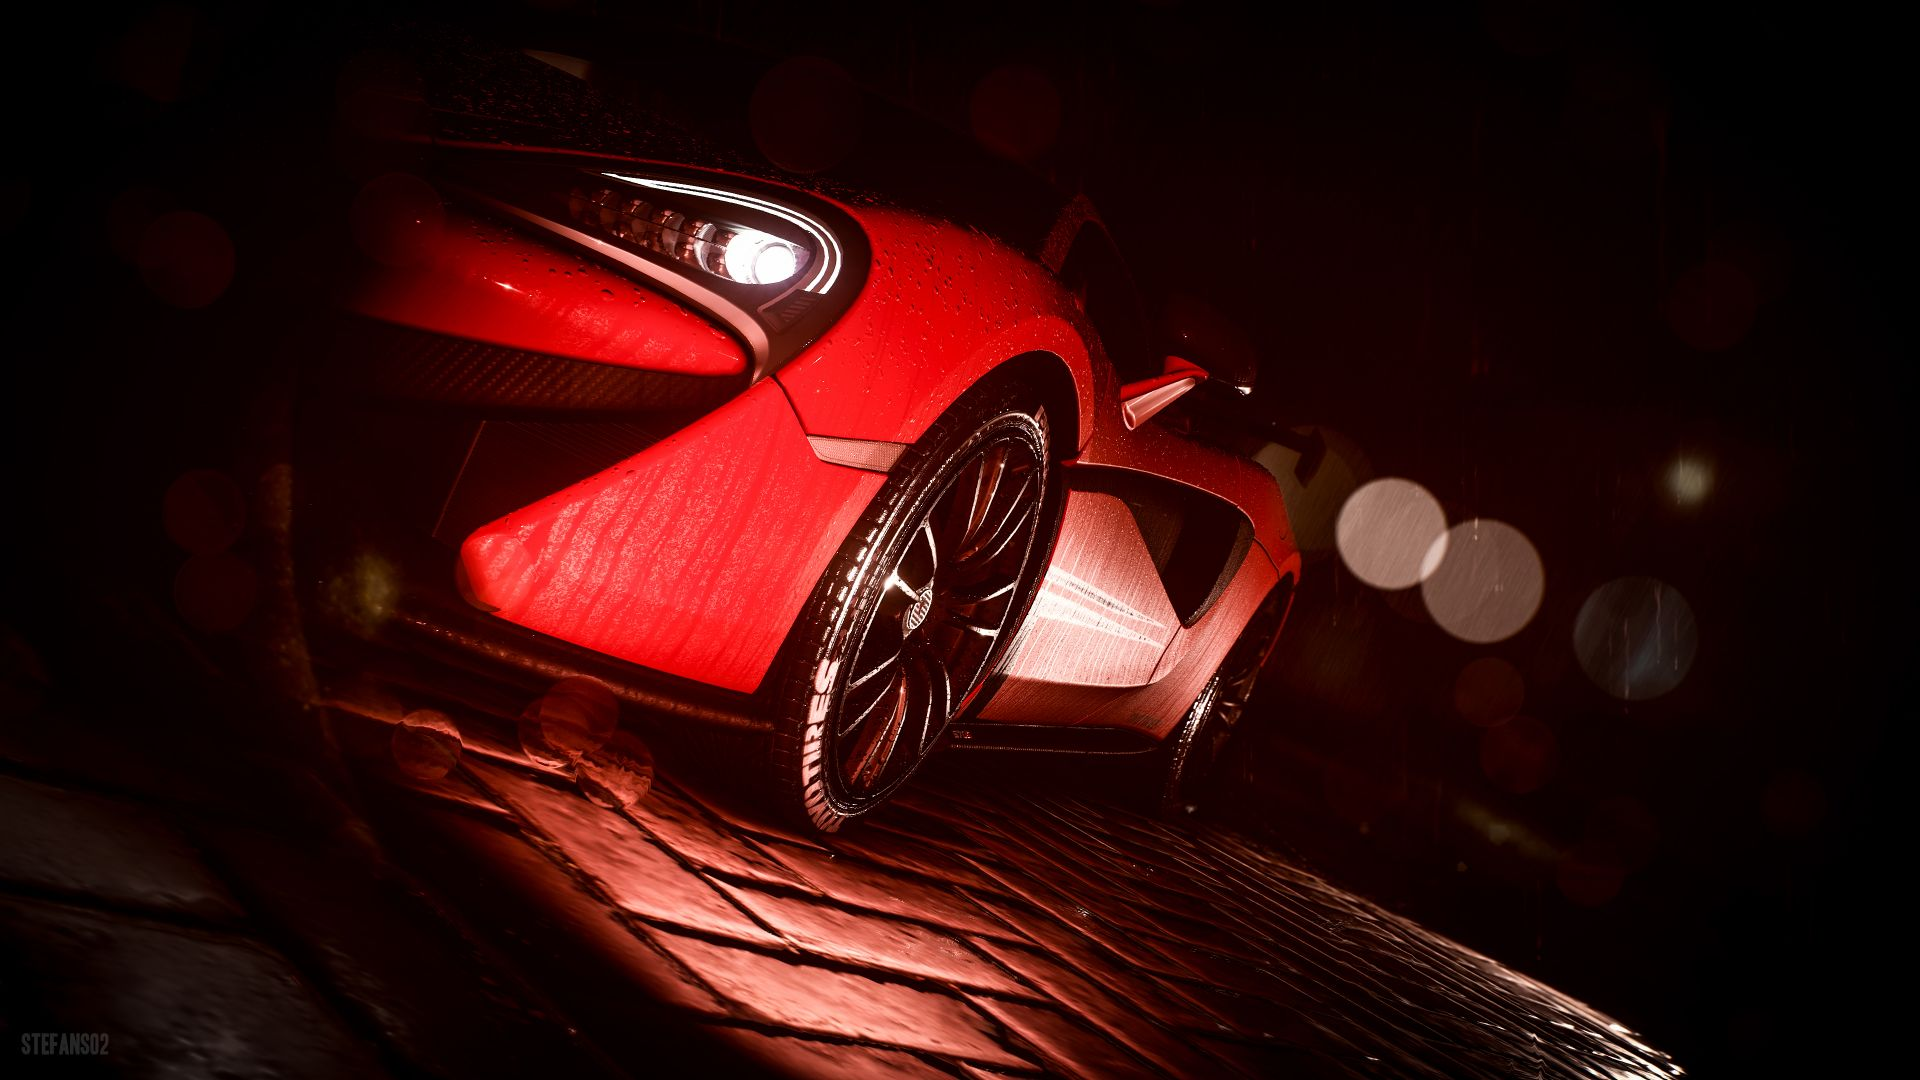 Wallpaper Need for speed, game, car, side view, red